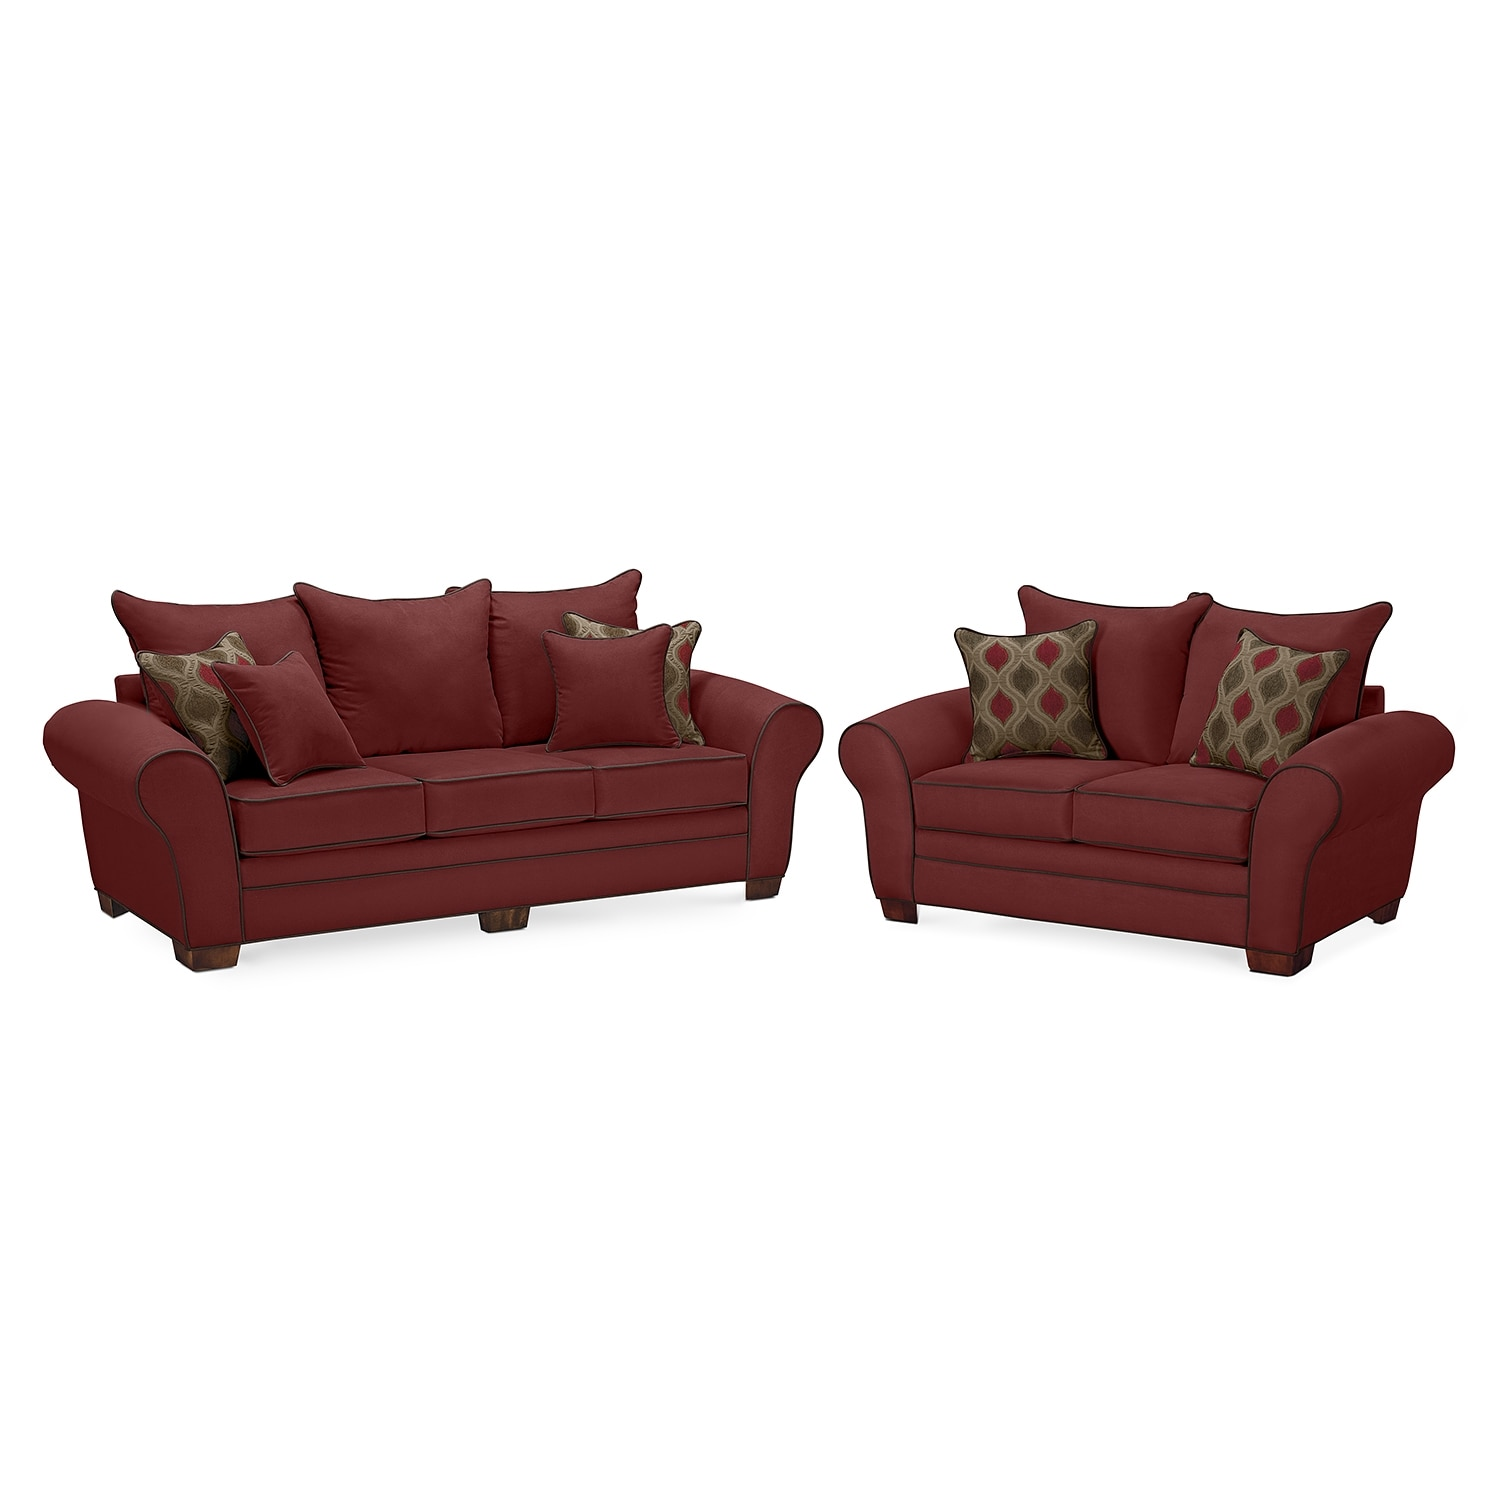 Living Room Furniture - Rendezvous Sofa and Loveseat Set - Wine